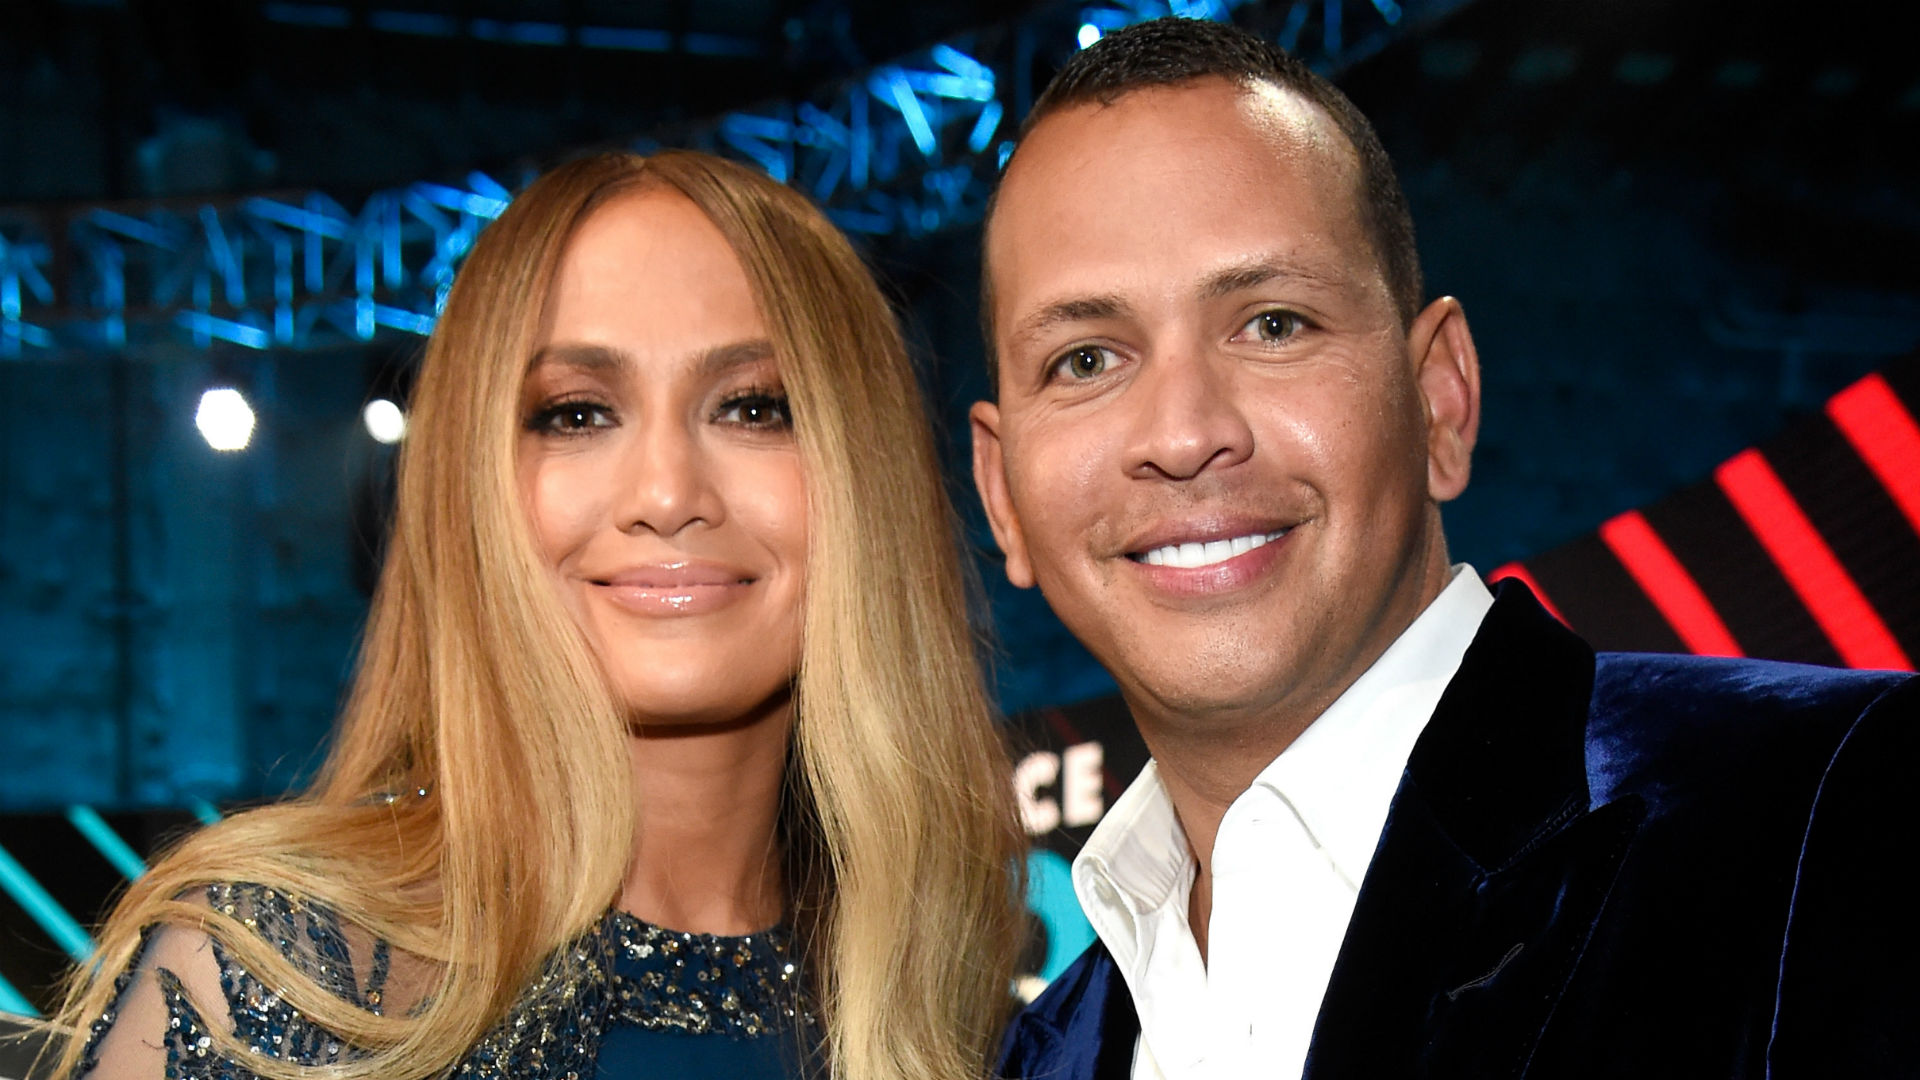 Jennifer Lopez Endorses Boyfriend Alex Rodriguez to Be Yankees' Next Manager